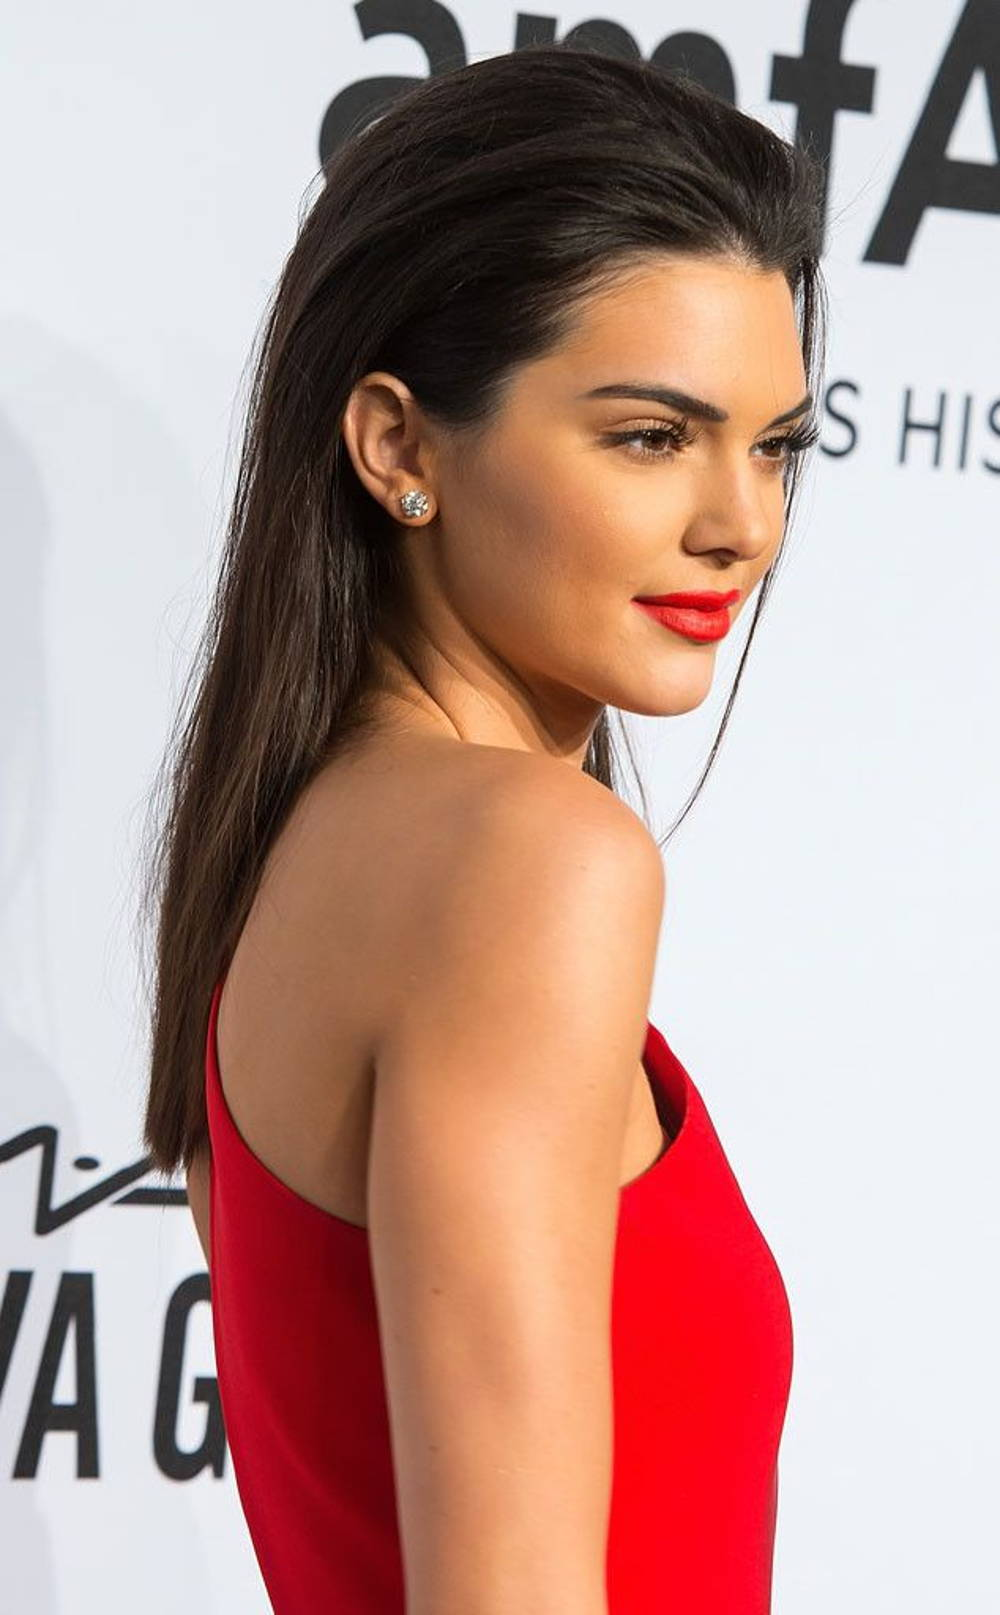 Kendall jenner slicked back hair